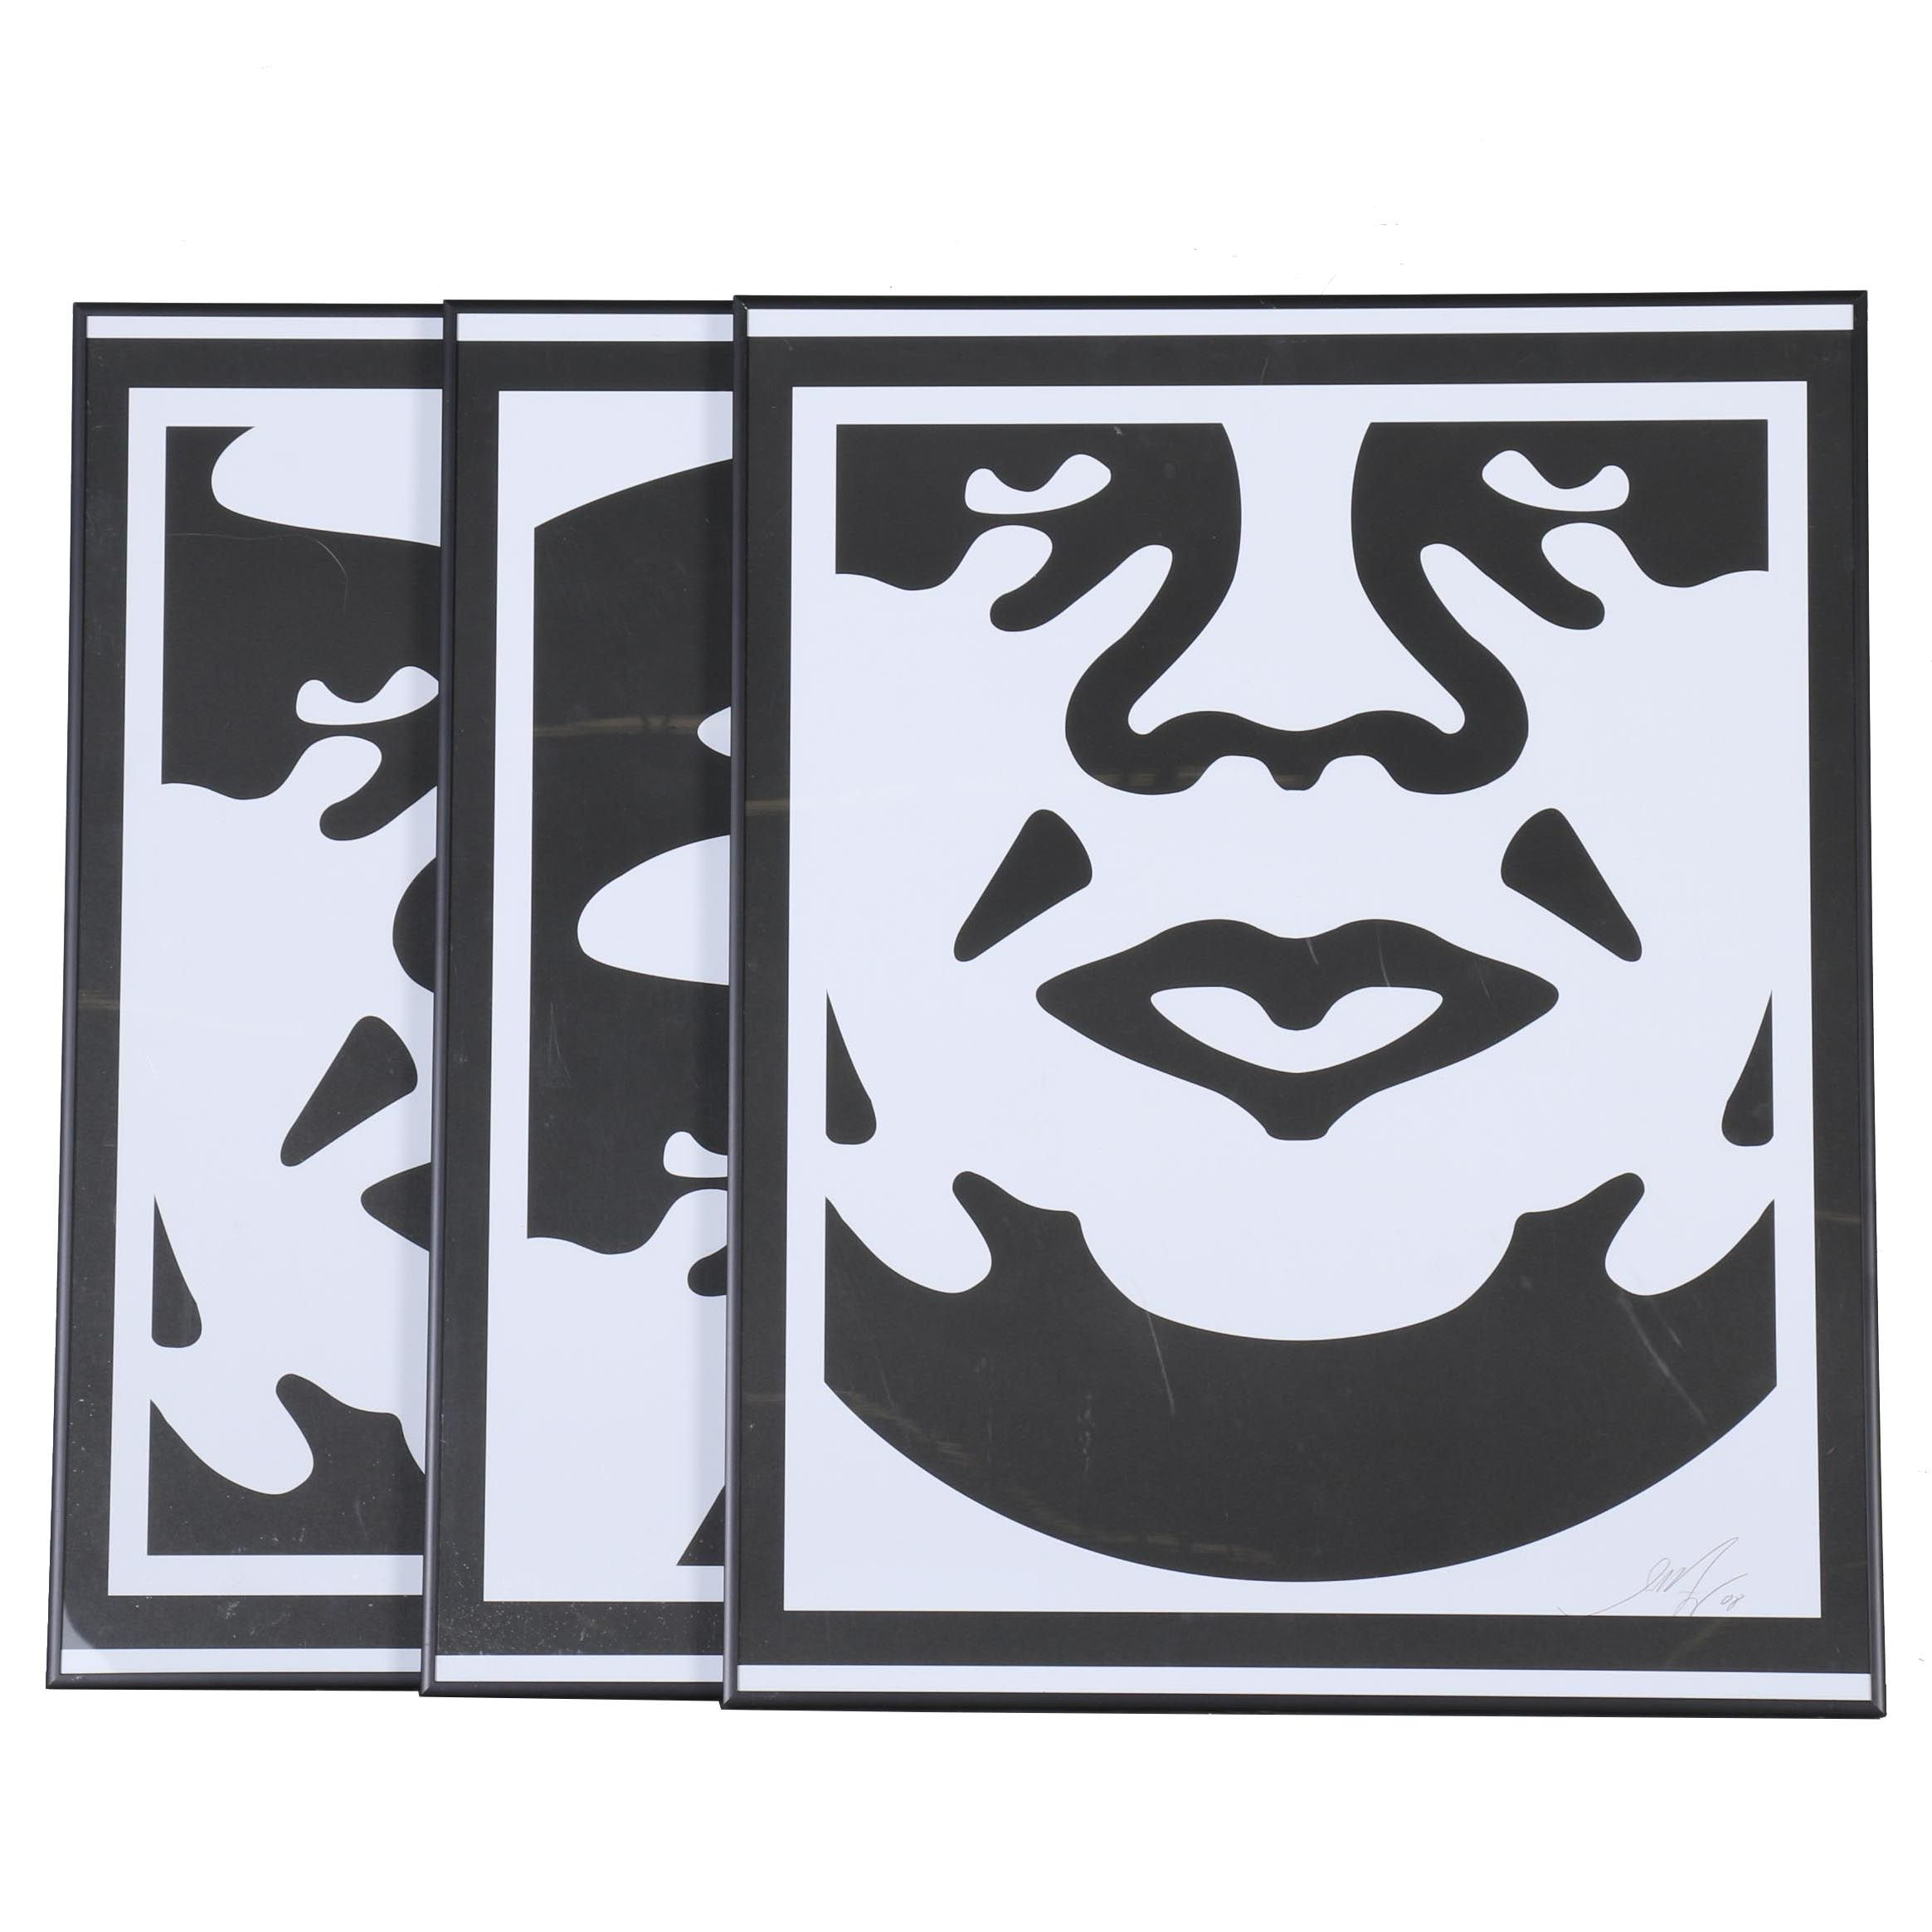 """Signed Shepard Fairey Lithographic Prints """"Obey 3-Face"""""""